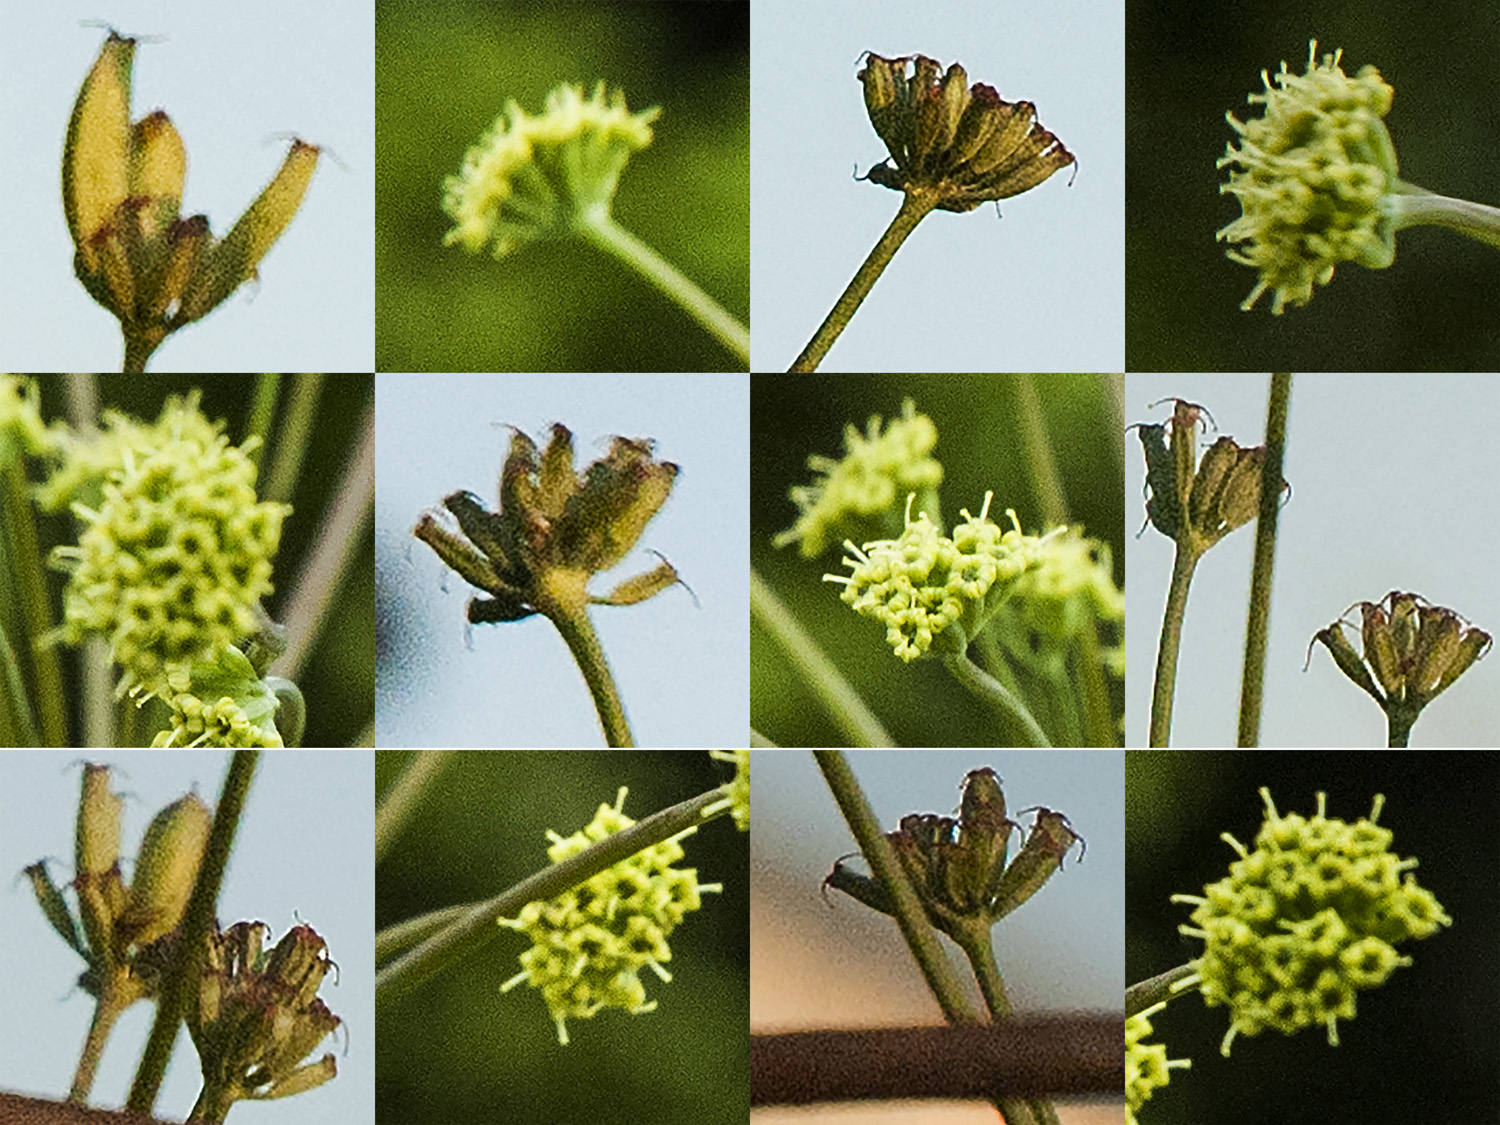 castle & ingram 2014 Lomatium nudicaule flowers that become seeds